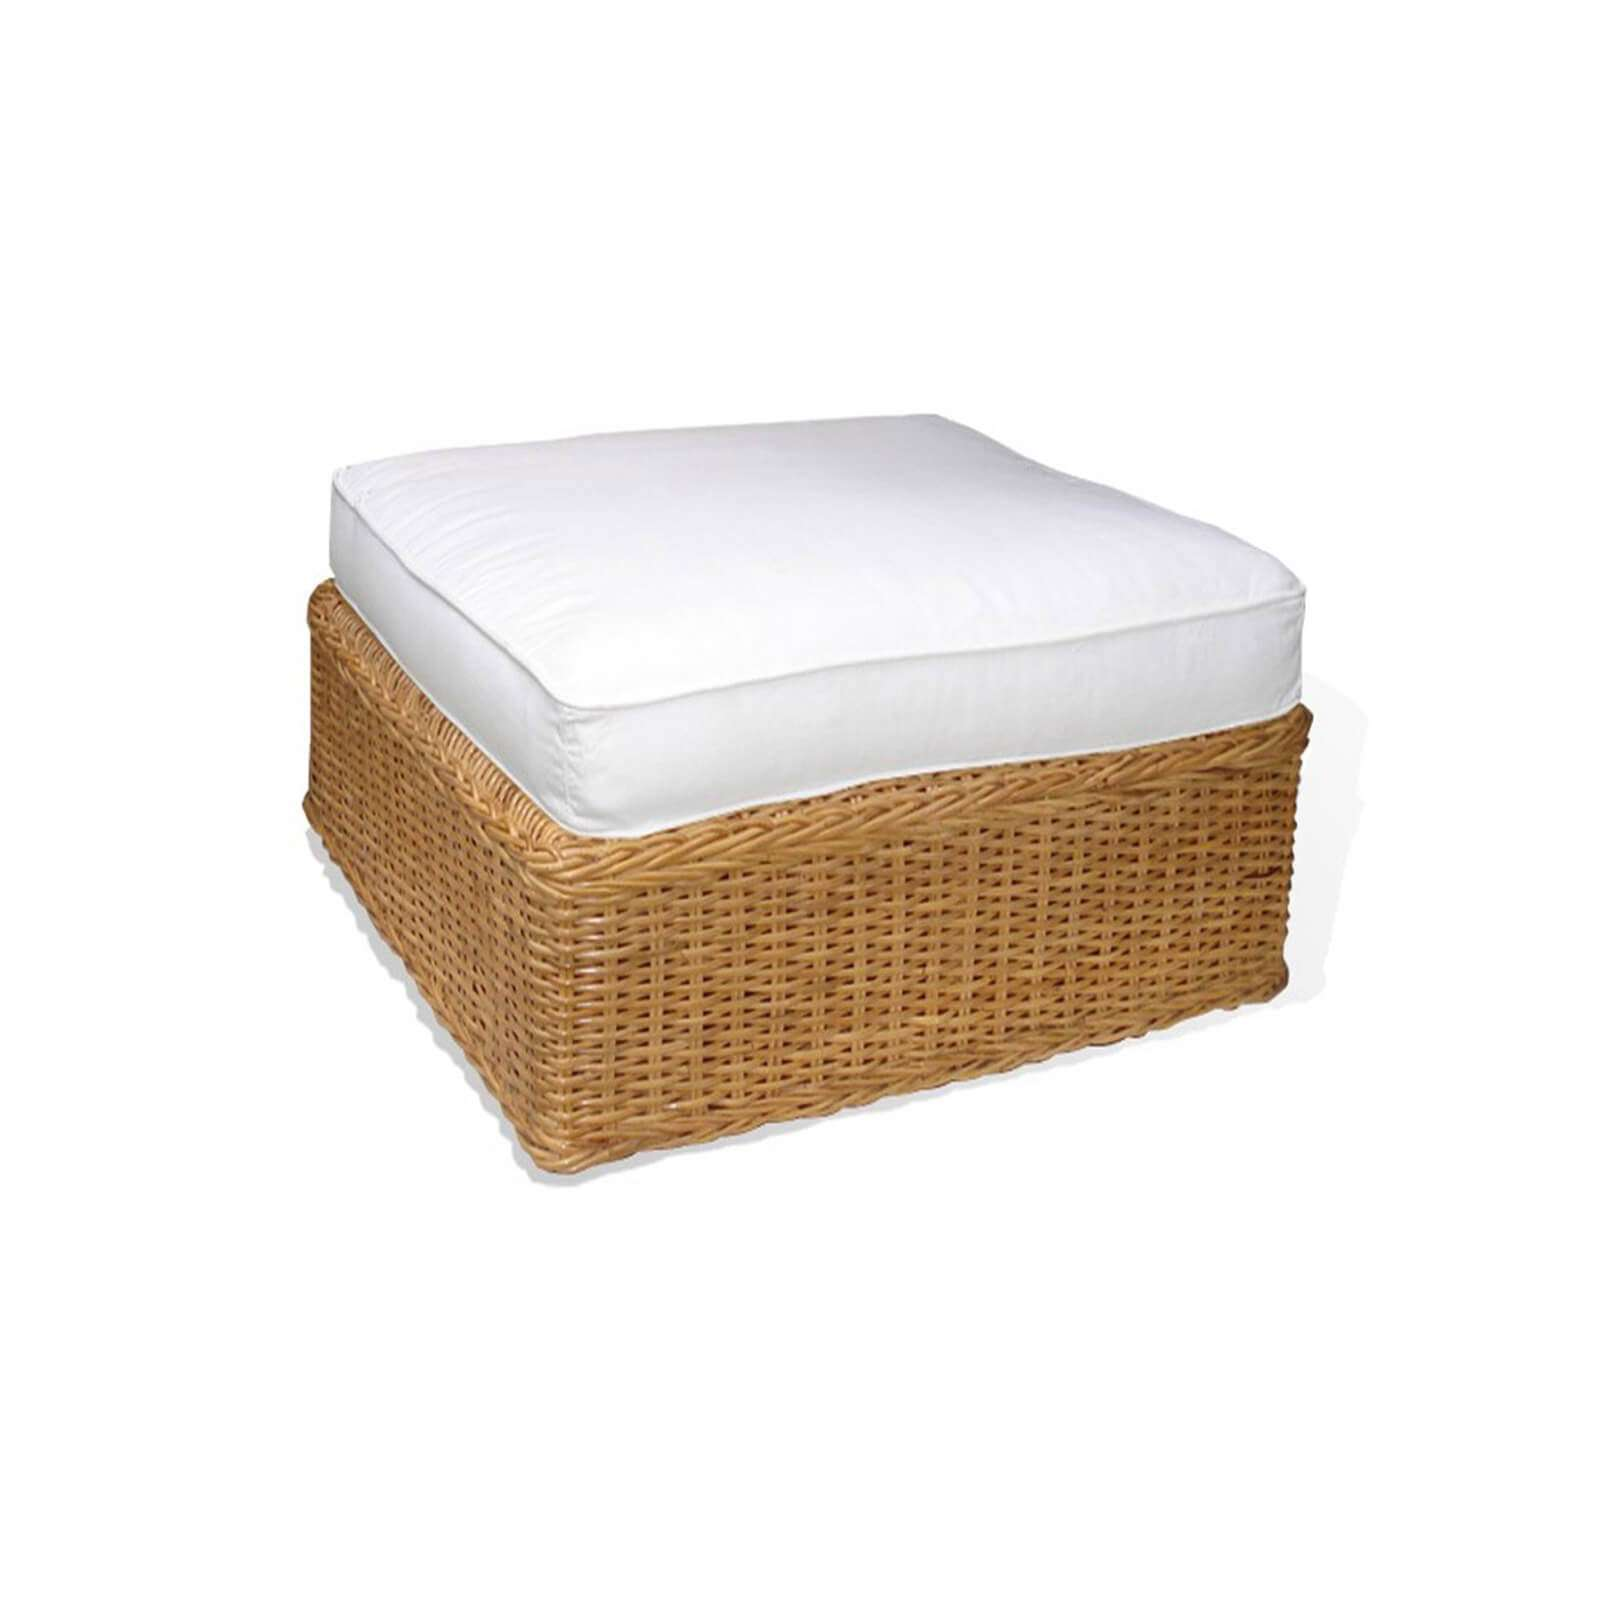 WICKER SLIPPER OTTOMAN 1 - STUART MEMBERY HOME COLLECTION